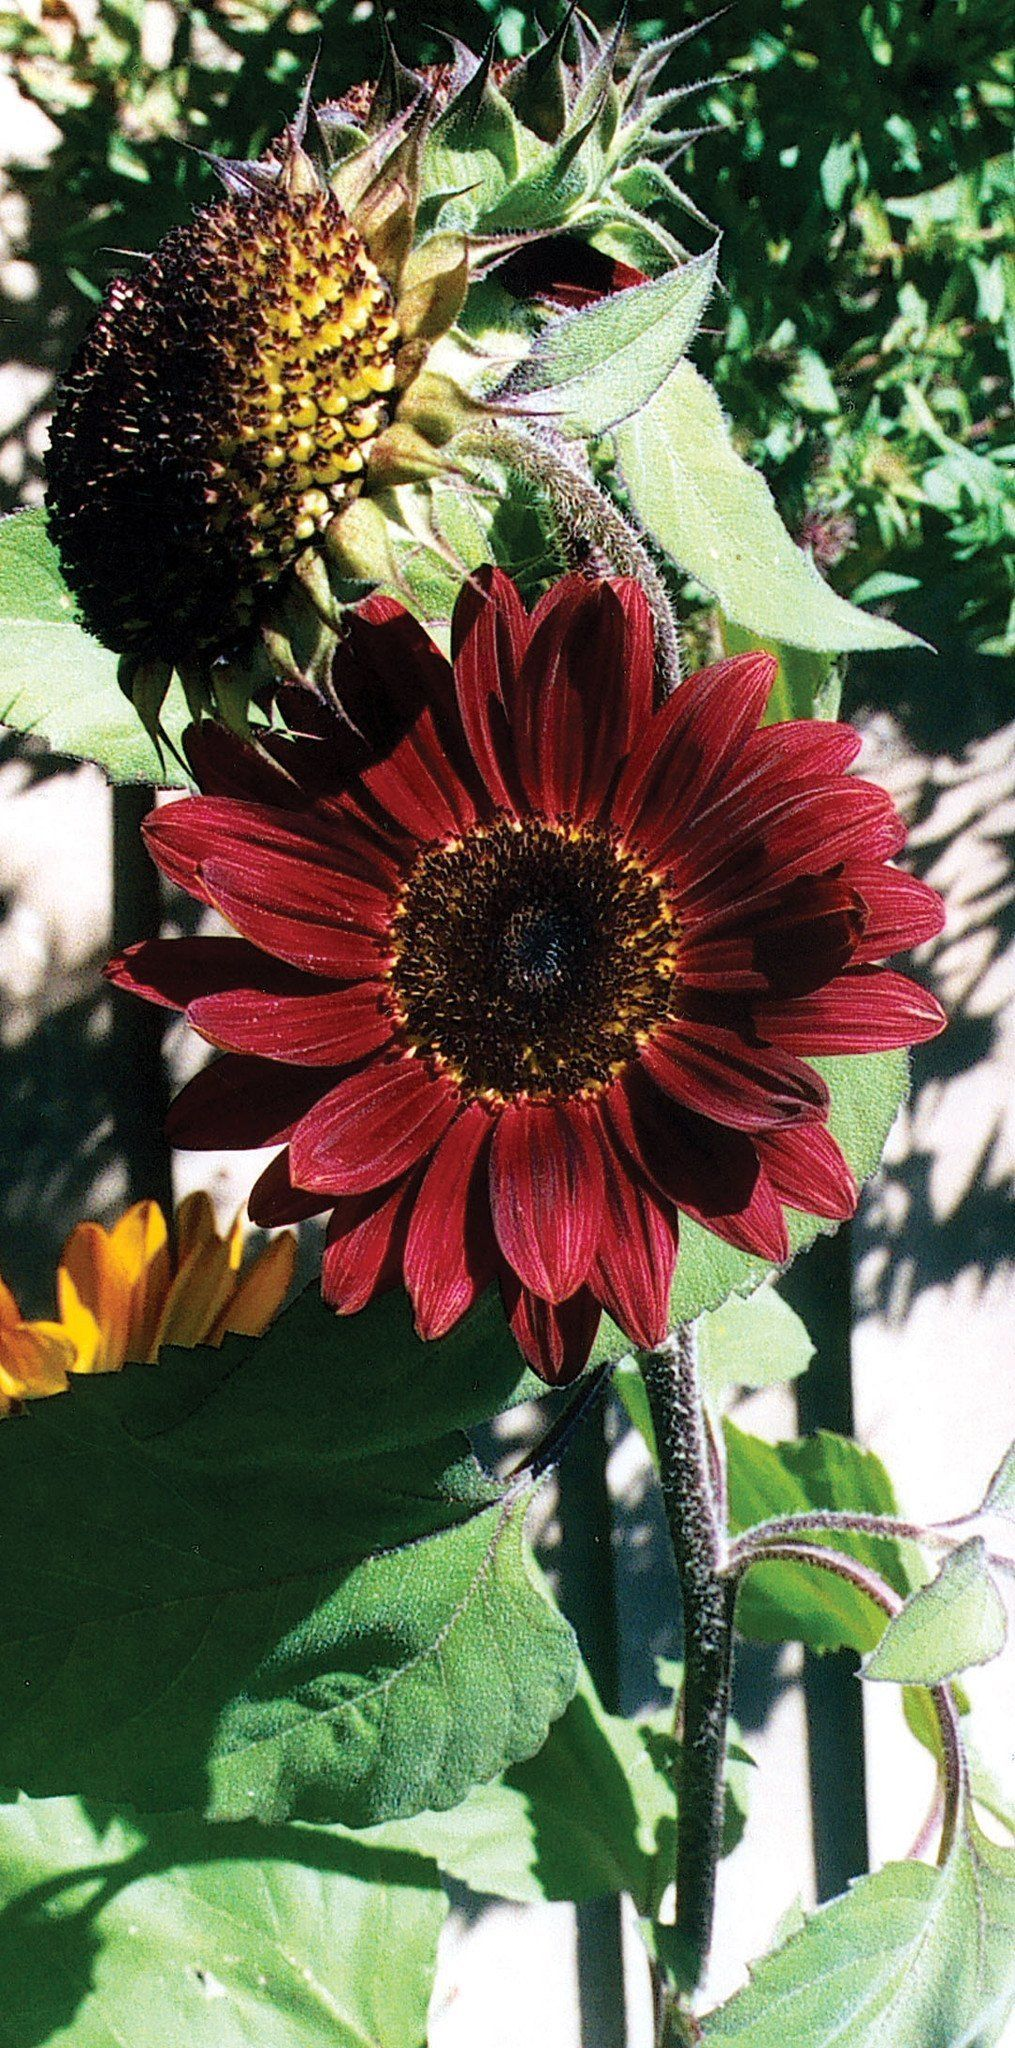 Sunflower moulin rouge Red sunflowers, Sunflower